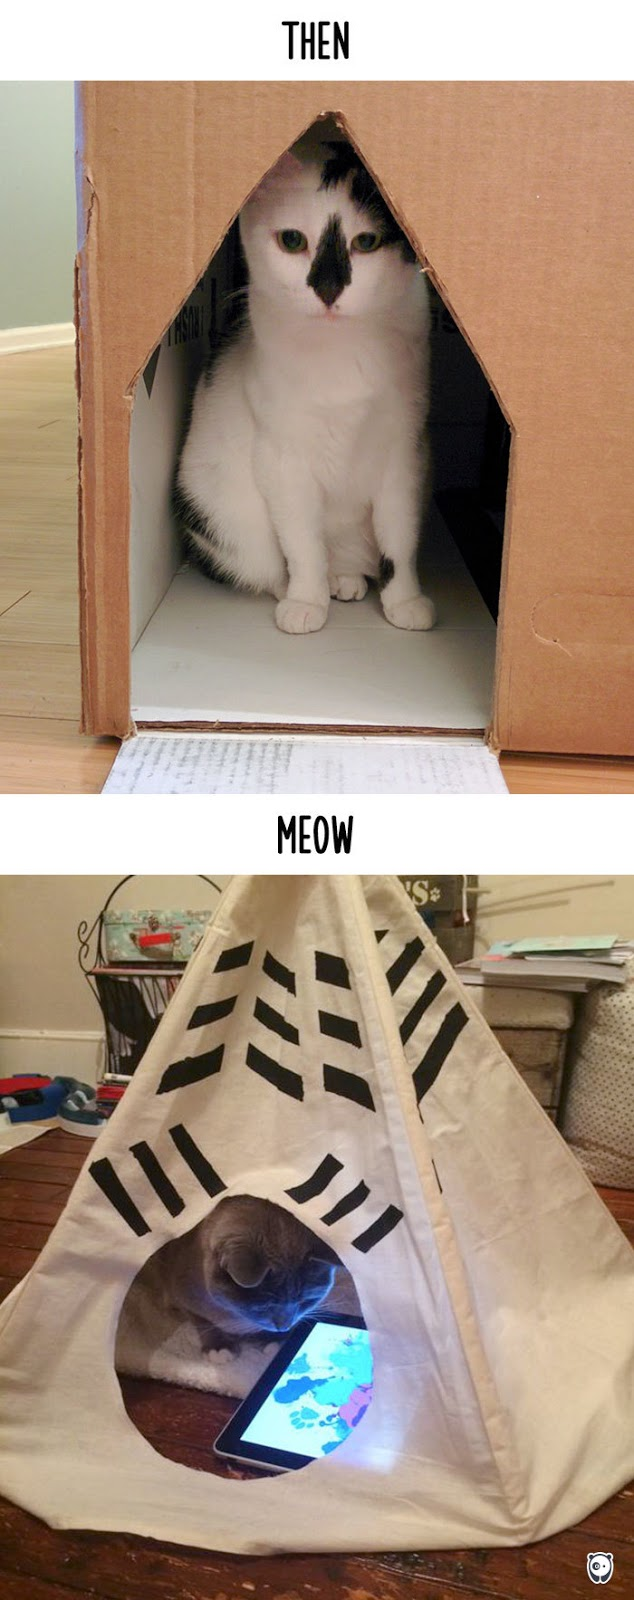 Then vs Meow How Technology Has Changed Cats' Lives (10+ Pics) - Housing